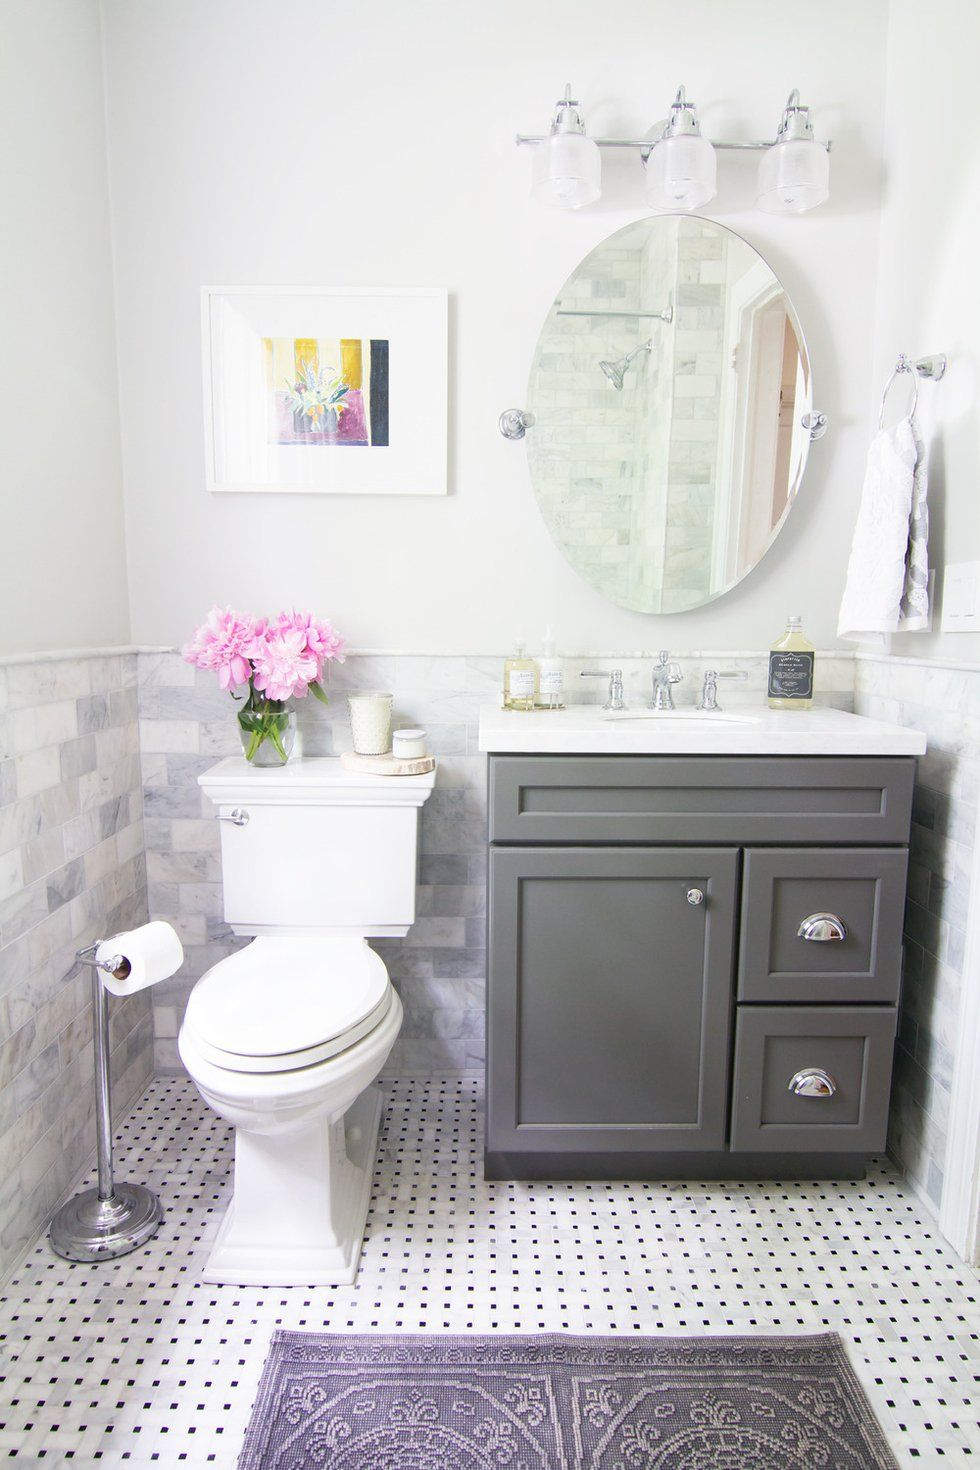 11 awesome type of small bathroom designs - Compact Bathroom Design Ideas